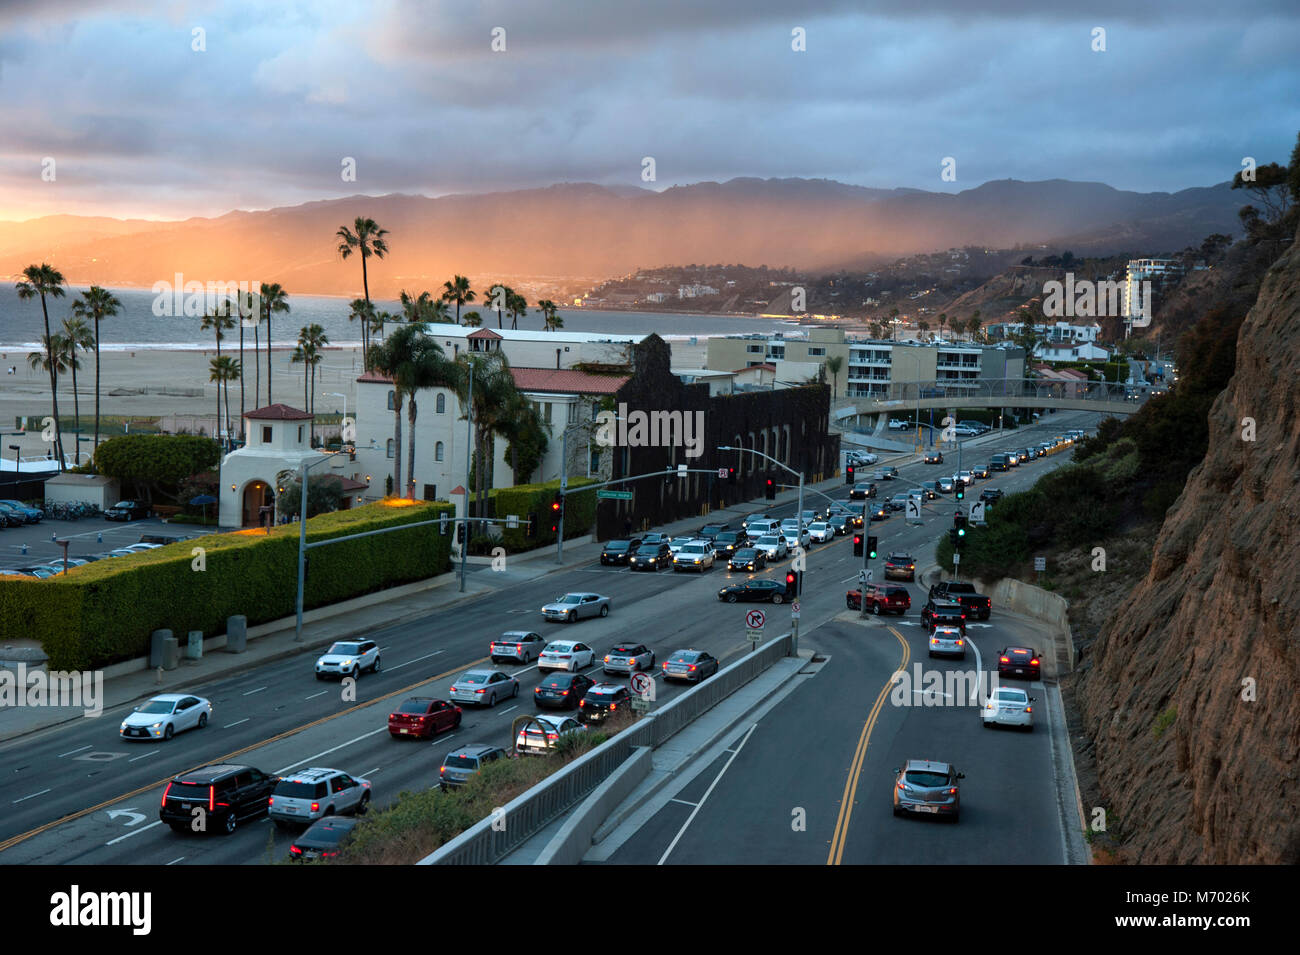 The California Incline meeting the Pacific Coast Highway in Santa Monica, California - Stock Image